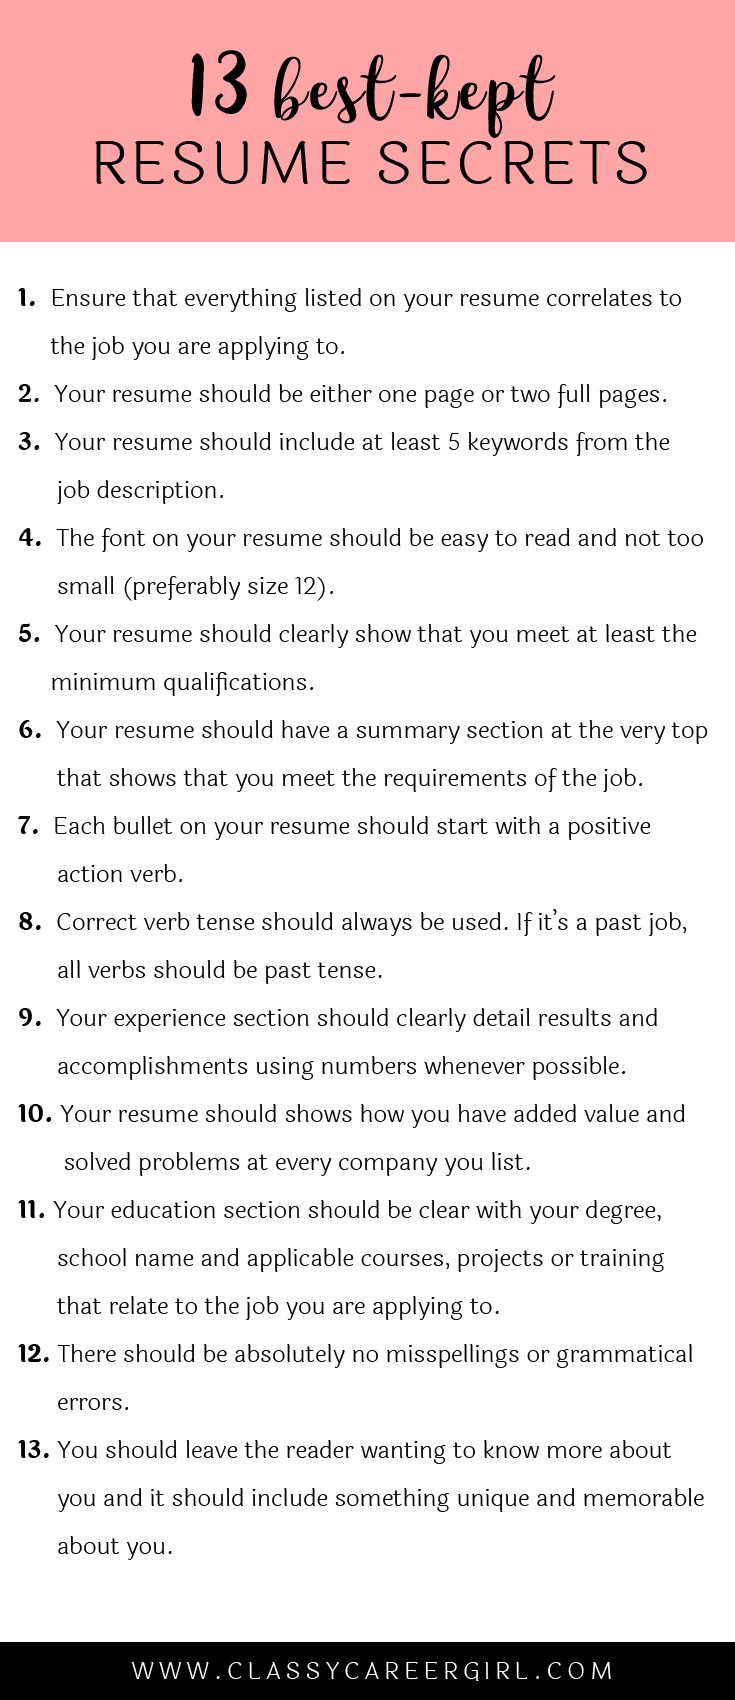 Opposenewapstandardsus  Marvellous  Ideas About Resume On Pinterest  Cv Format Resume Cv And  With Foxy Some Hiring Managers Will Toss Your Resume Out If You Dont Know These  With Awesome Resume English Also Skills Listed On Resume In Addition Improve Resume And Lvn Resume Sample As Well As Best Resume Builder Software Additionally Free Cover Letter For Resume From Pinterestcom With Opposenewapstandardsus  Foxy  Ideas About Resume On Pinterest  Cv Format Resume Cv And  With Awesome Some Hiring Managers Will Toss Your Resume Out If You Dont Know These  And Marvellous Resume English Also Skills Listed On Resume In Addition Improve Resume From Pinterestcom